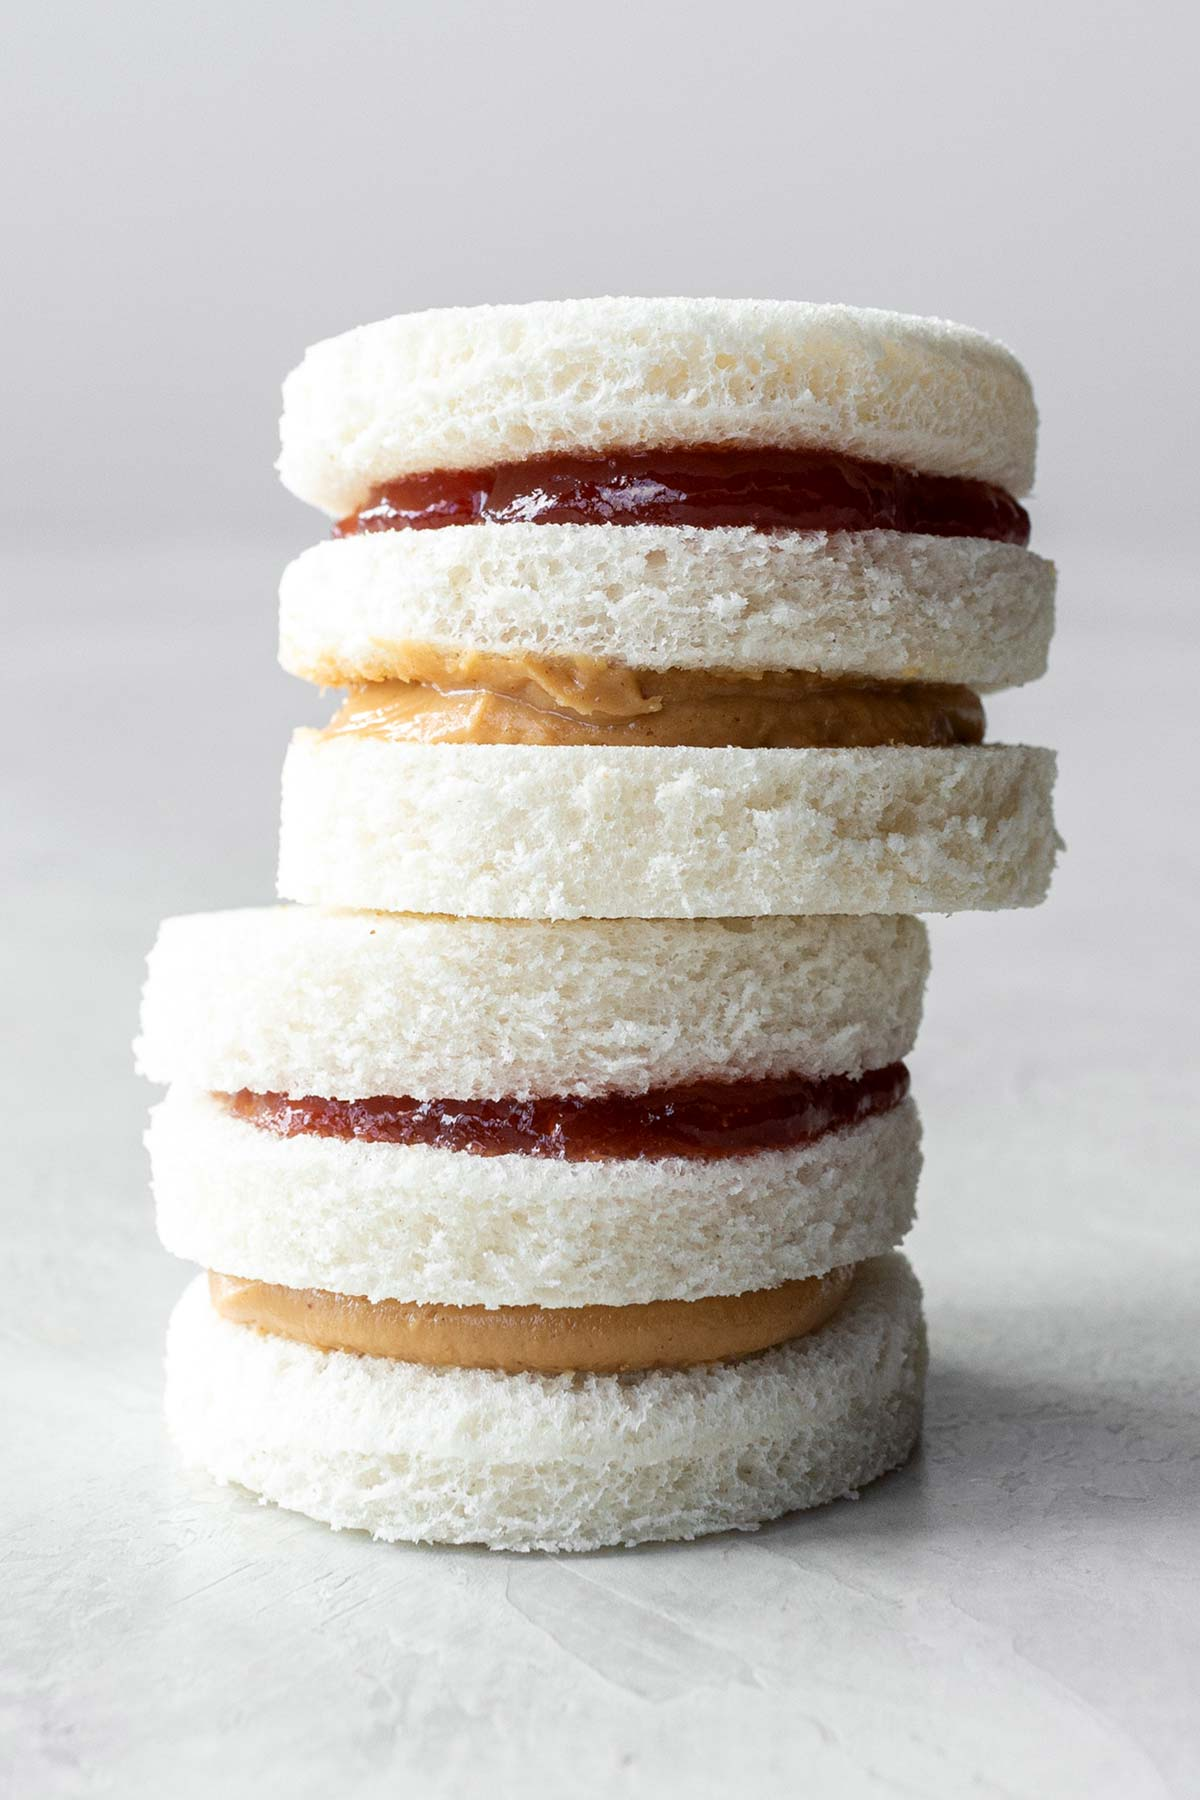 Two peanut butter and jelly tea sandwiches, stacked.